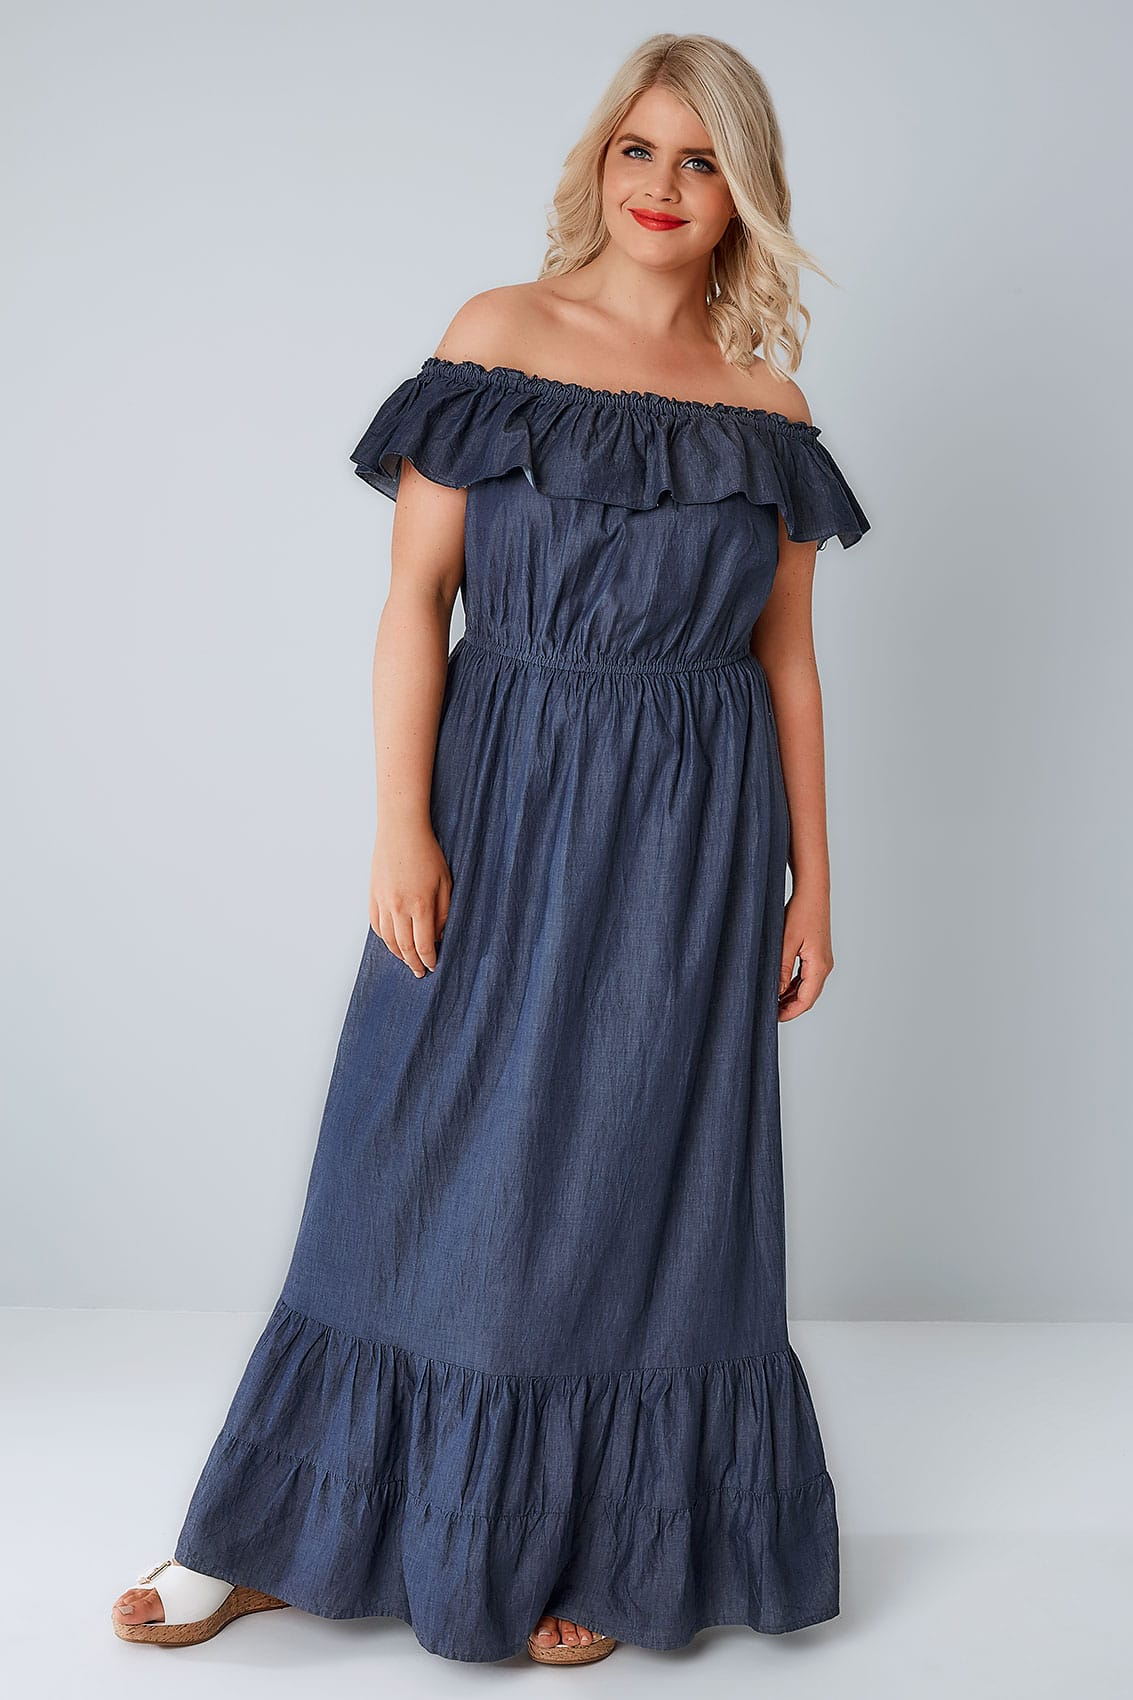 SHOPBOP - chambray dress FASTEST FREE SHIPPING WORLDWIDE on chambray dress & FREE EASY RETURNS.